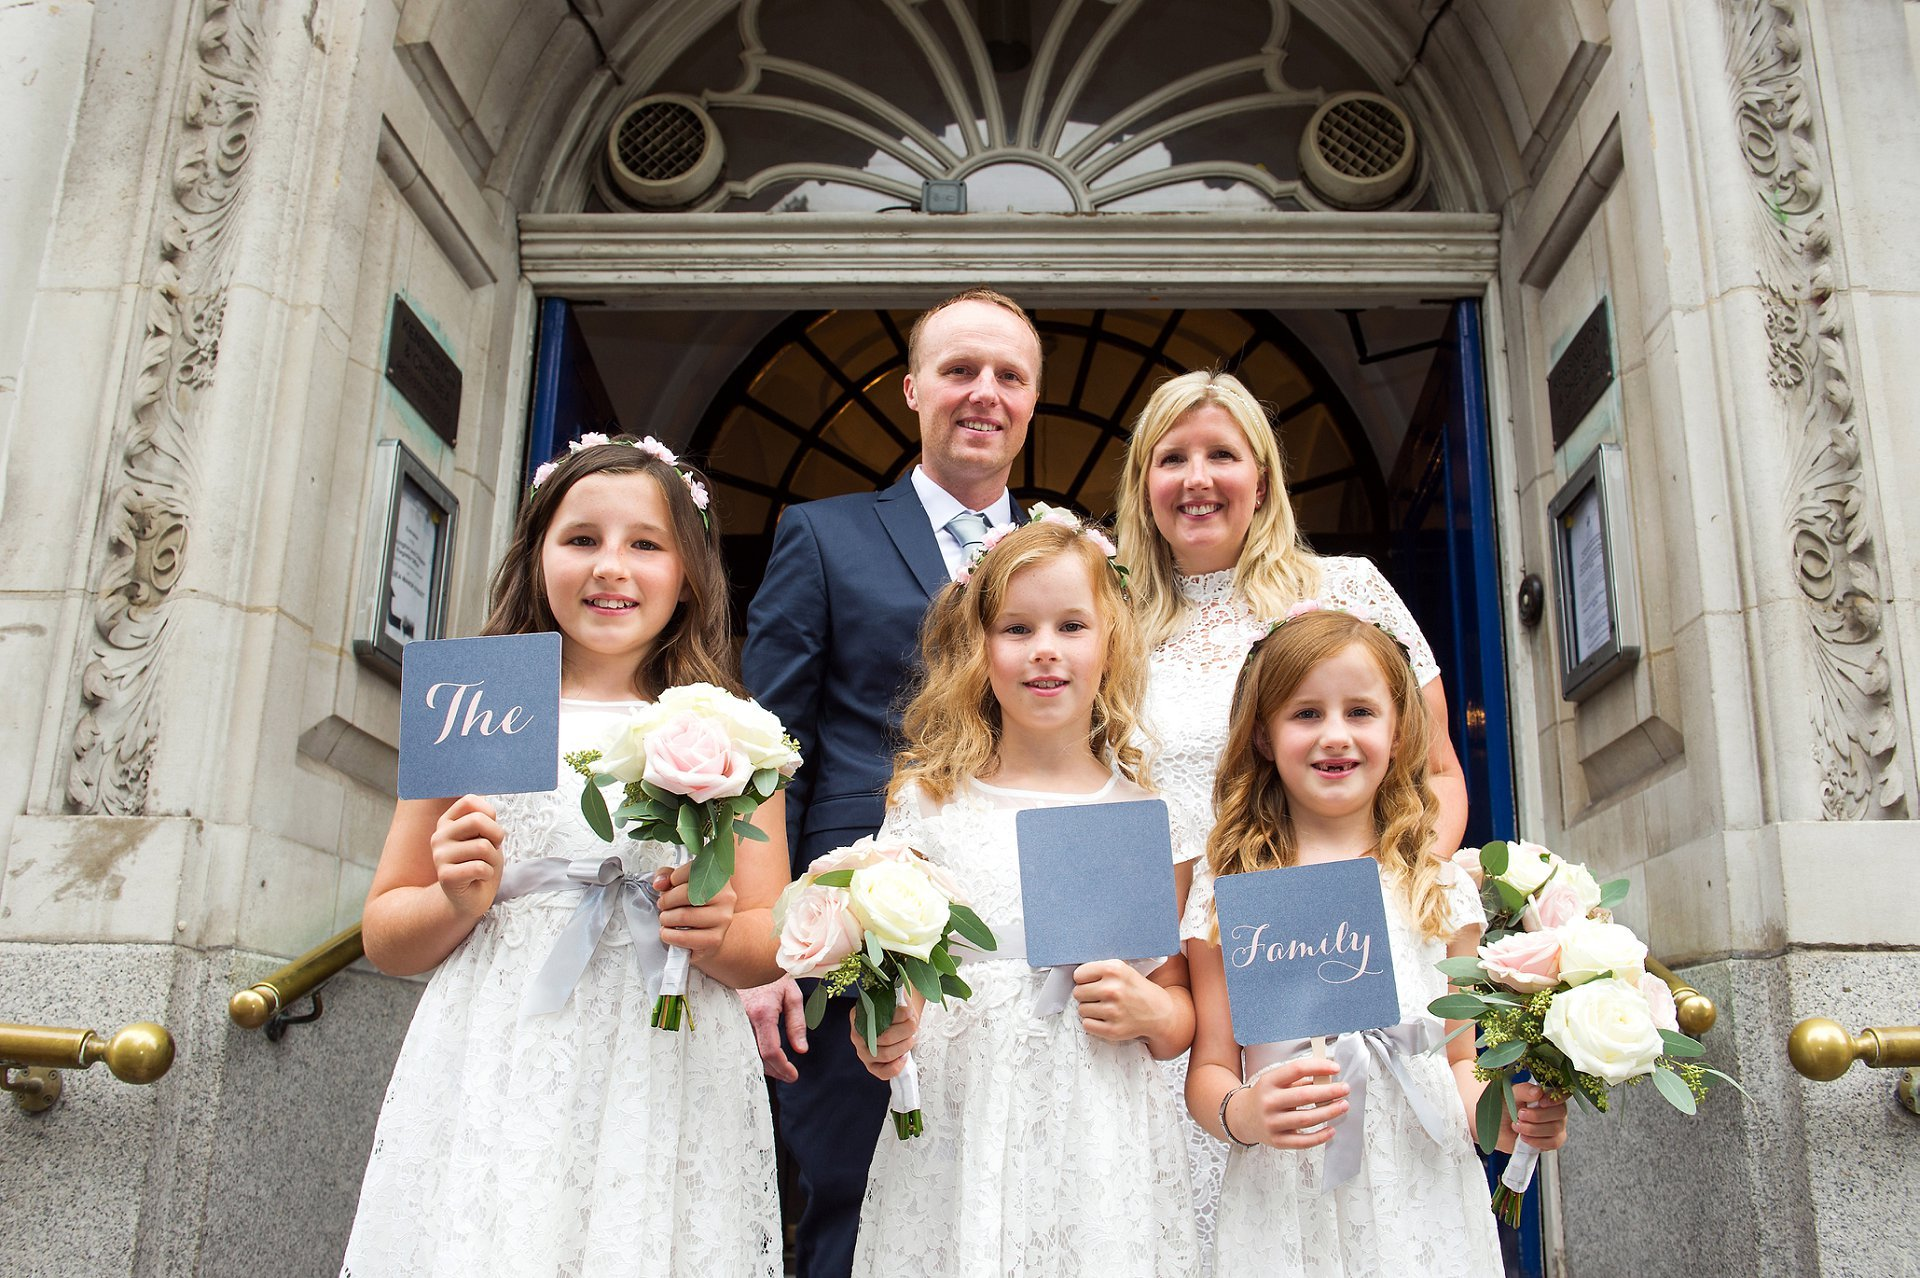 Family Wedding Photography Chelsea Town Hall and the couple with their three small daughters pose for a photo on the iconic Chelsea steps after their civil wedding (Emma Duggan Photography)